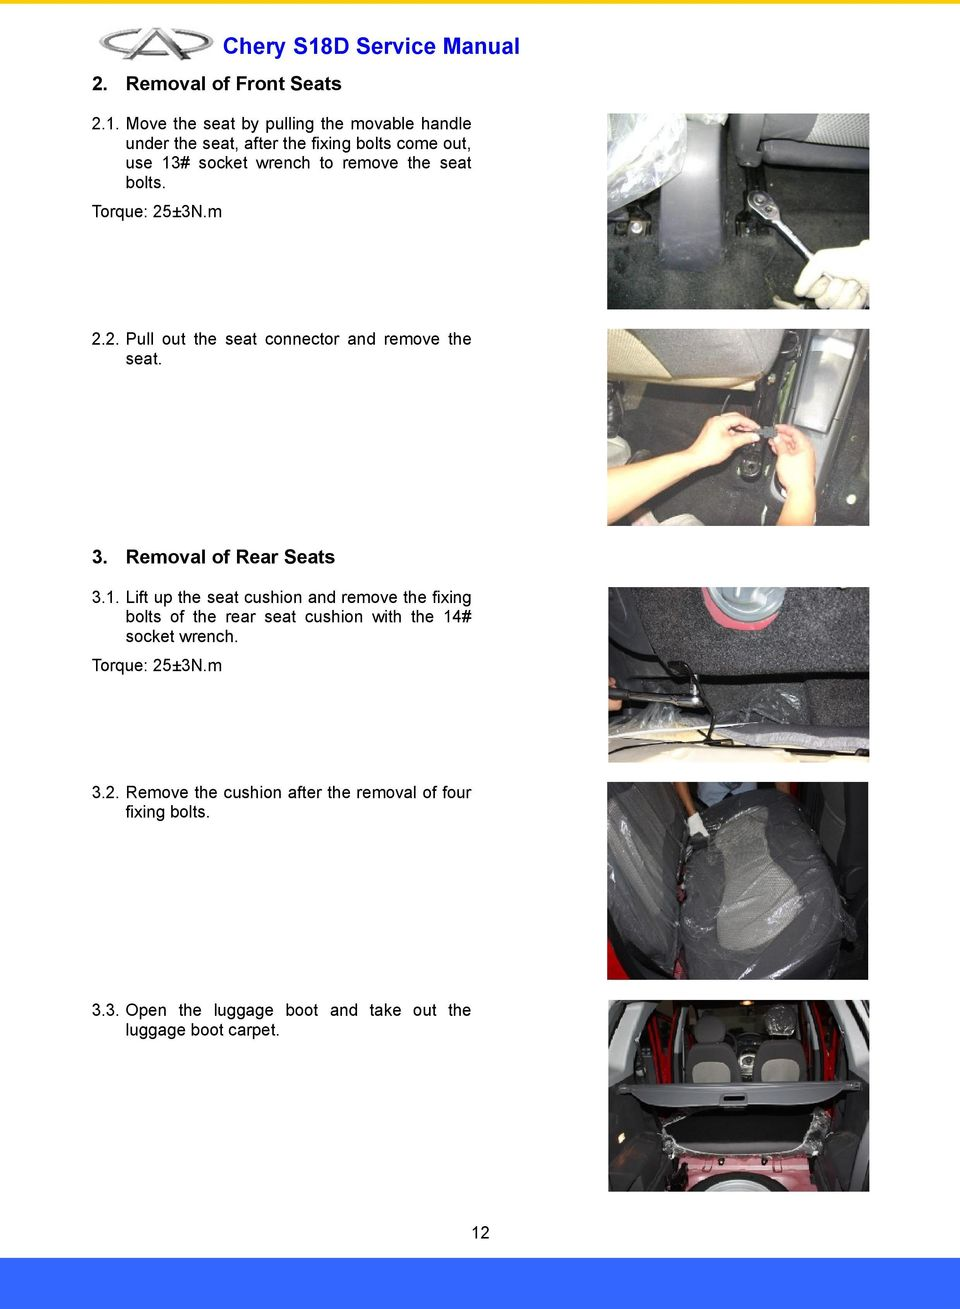 seat bolts. Torque: 25±3N.m 2.2. Pull out the seat connector and remove the seat. 3. Removal of Rear Seats 3.1.